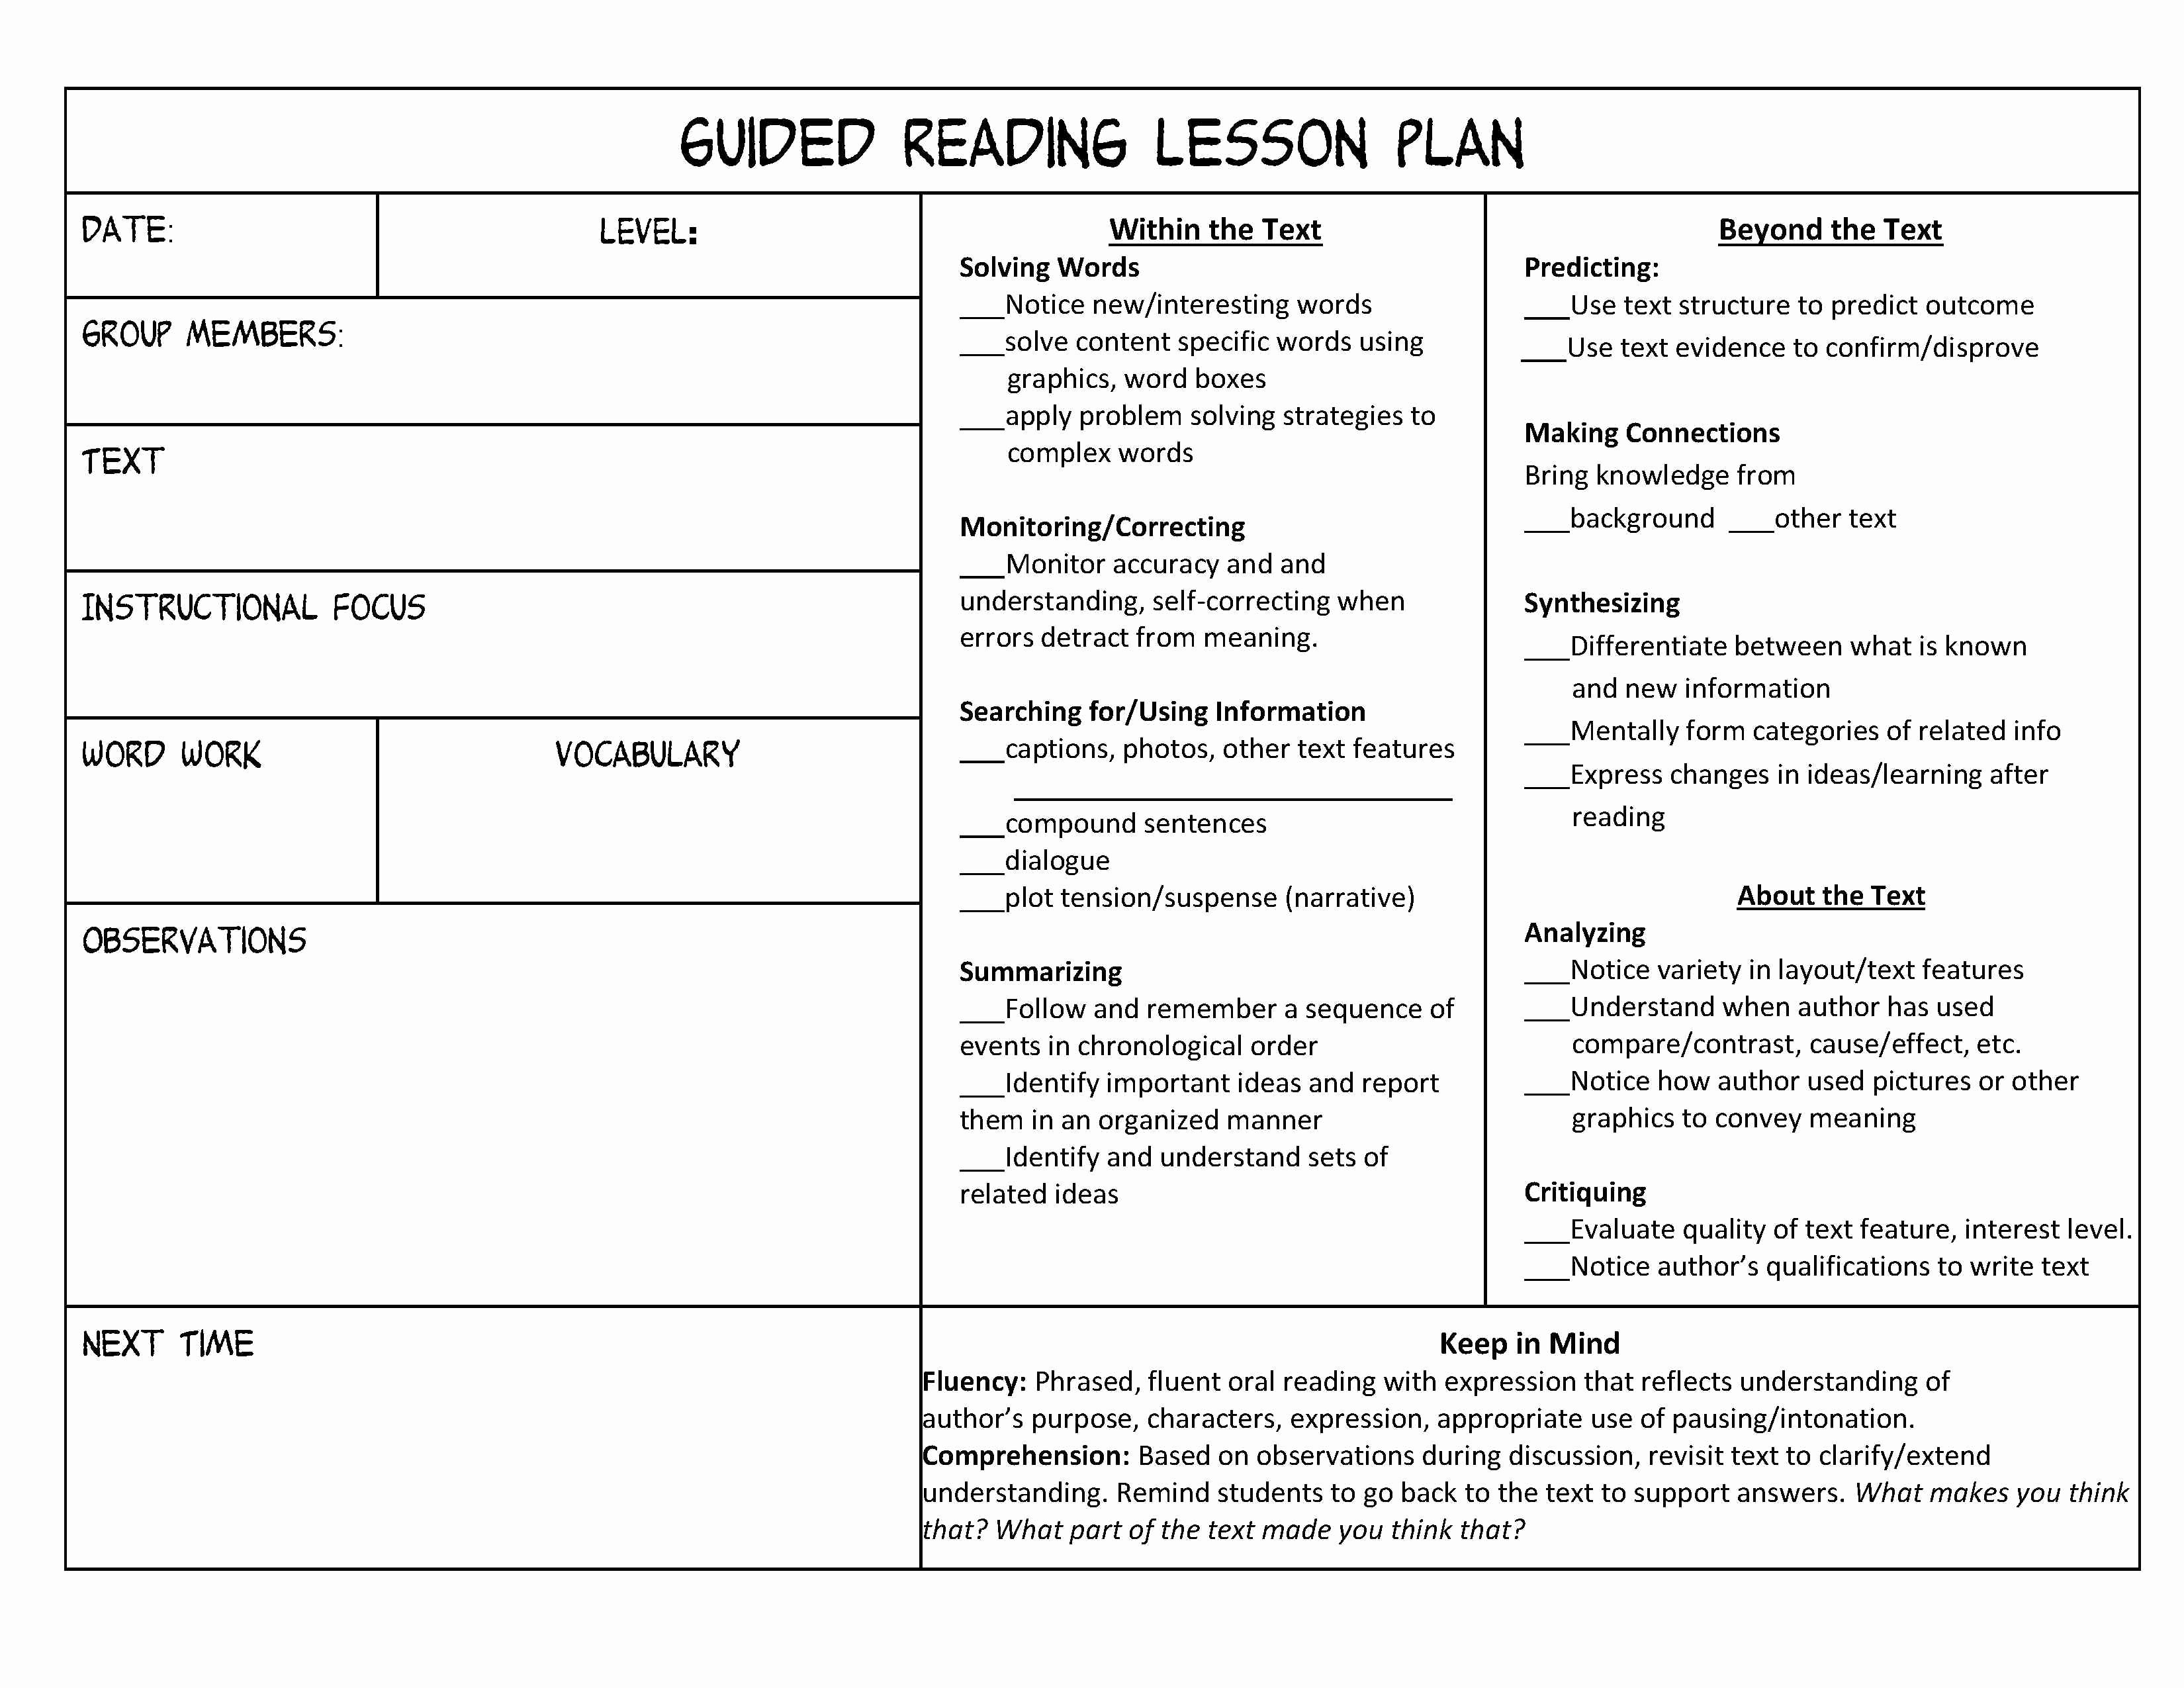 Lesson Plan Template Free Inspirational Guided Reading organization Made Easy